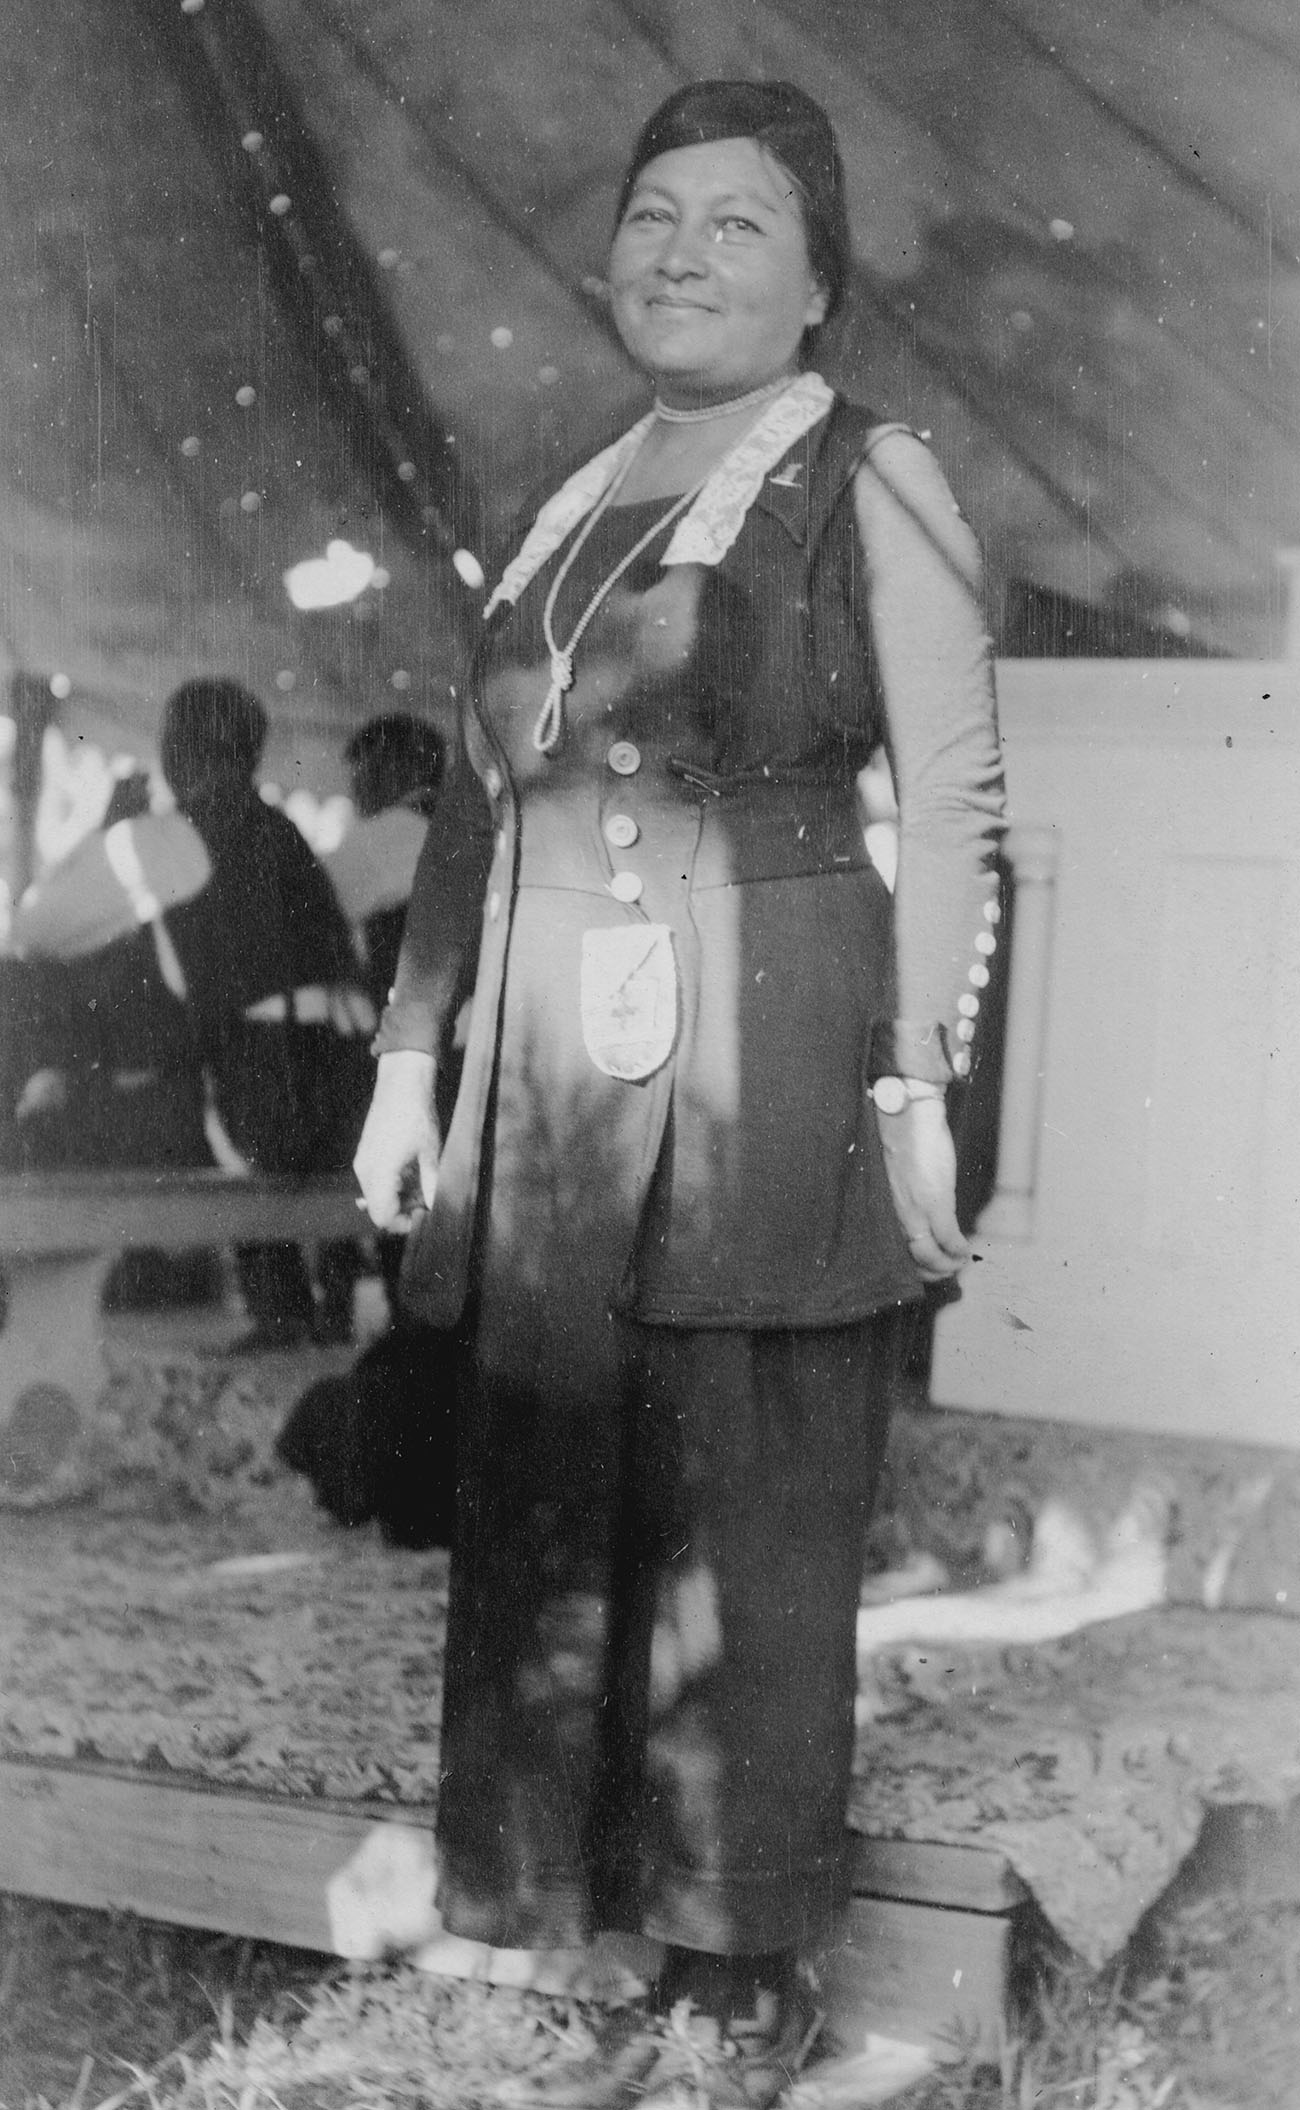 Figure 5.1. Gertrude Simmons Bonnin as a speaker at the Catholic Sioux Congress, Holy Rosary Mission, South Dakota, Pine Ridge Reservation, 1920. Courtesy of the Marquette University Archives, Bureau of Catholic Indian Missions Records, ID (BCIM) 00684.